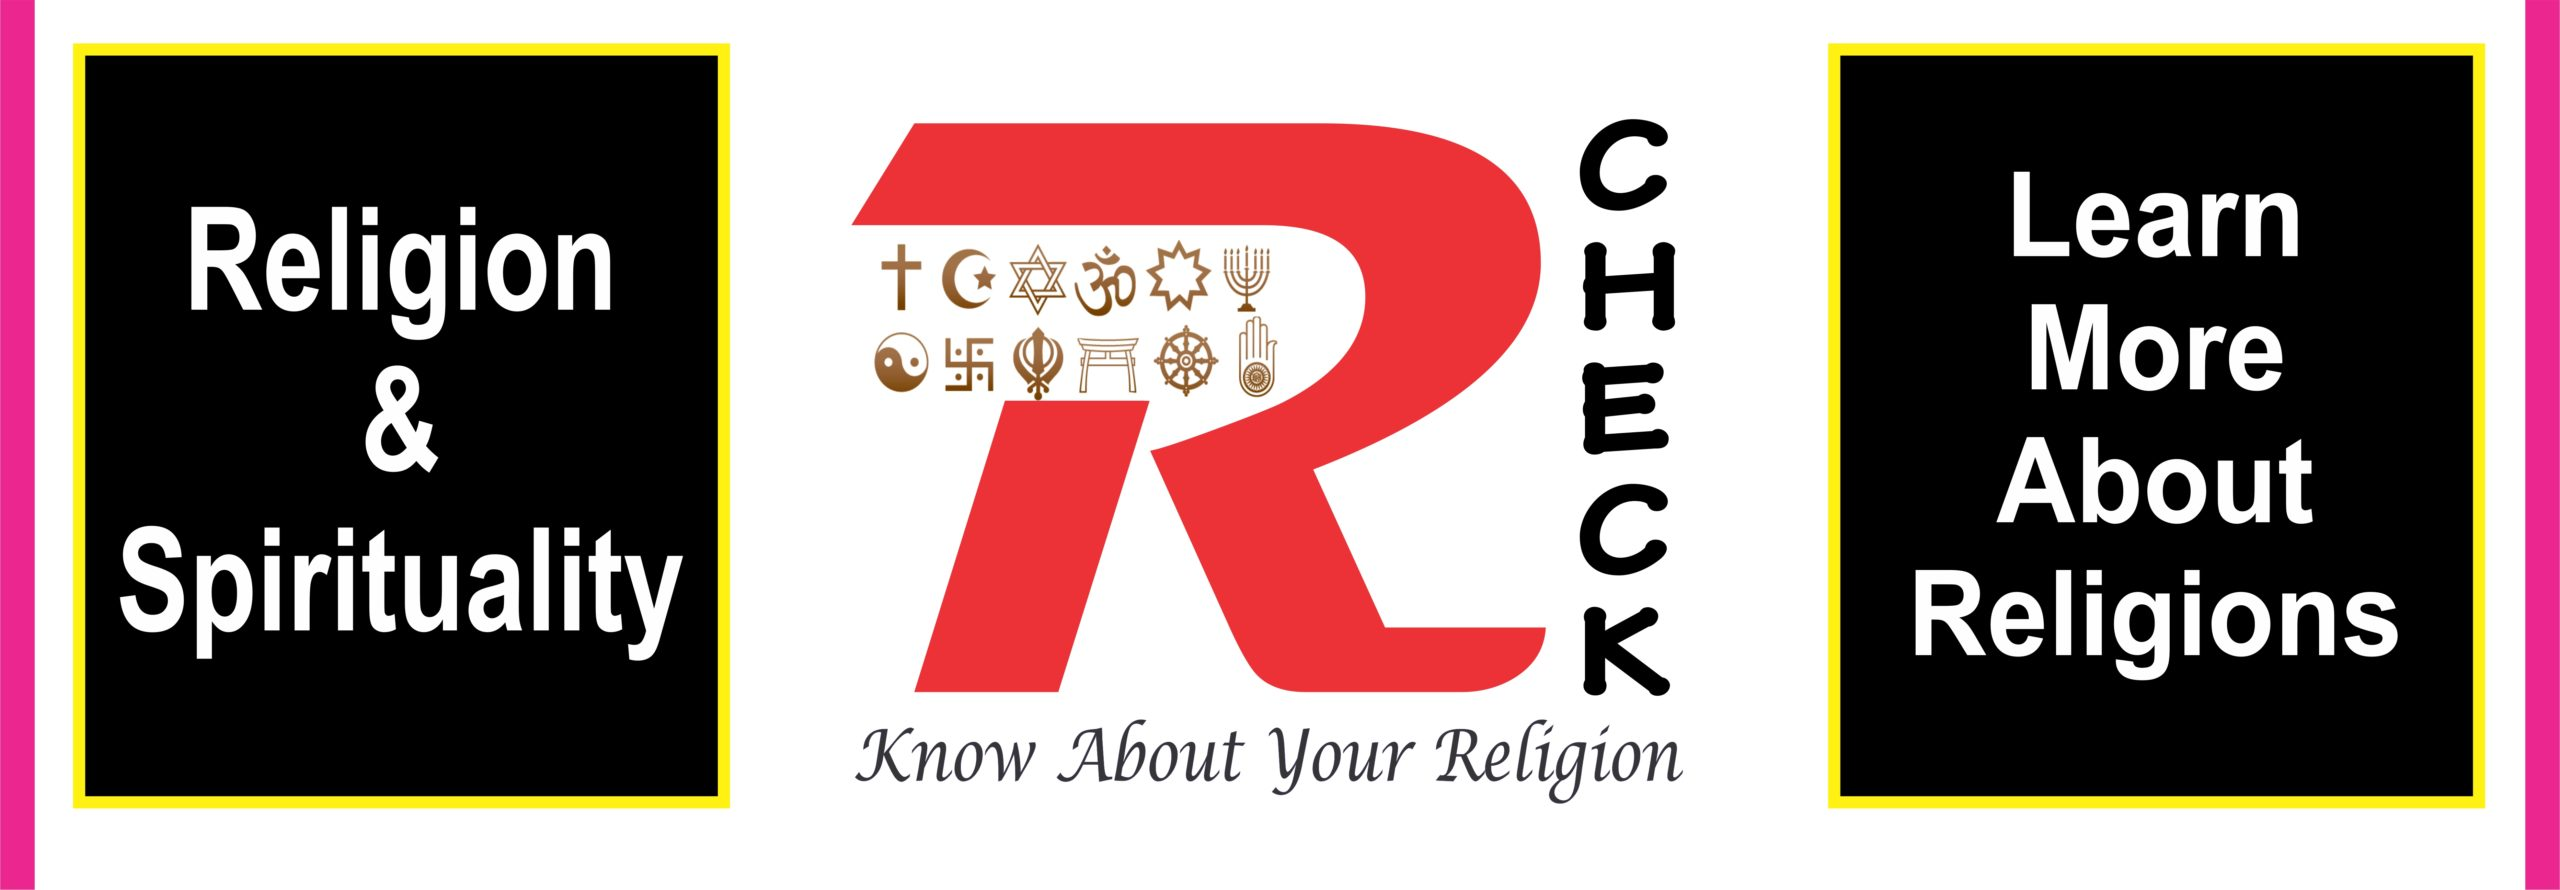 Teaching You More About Religion